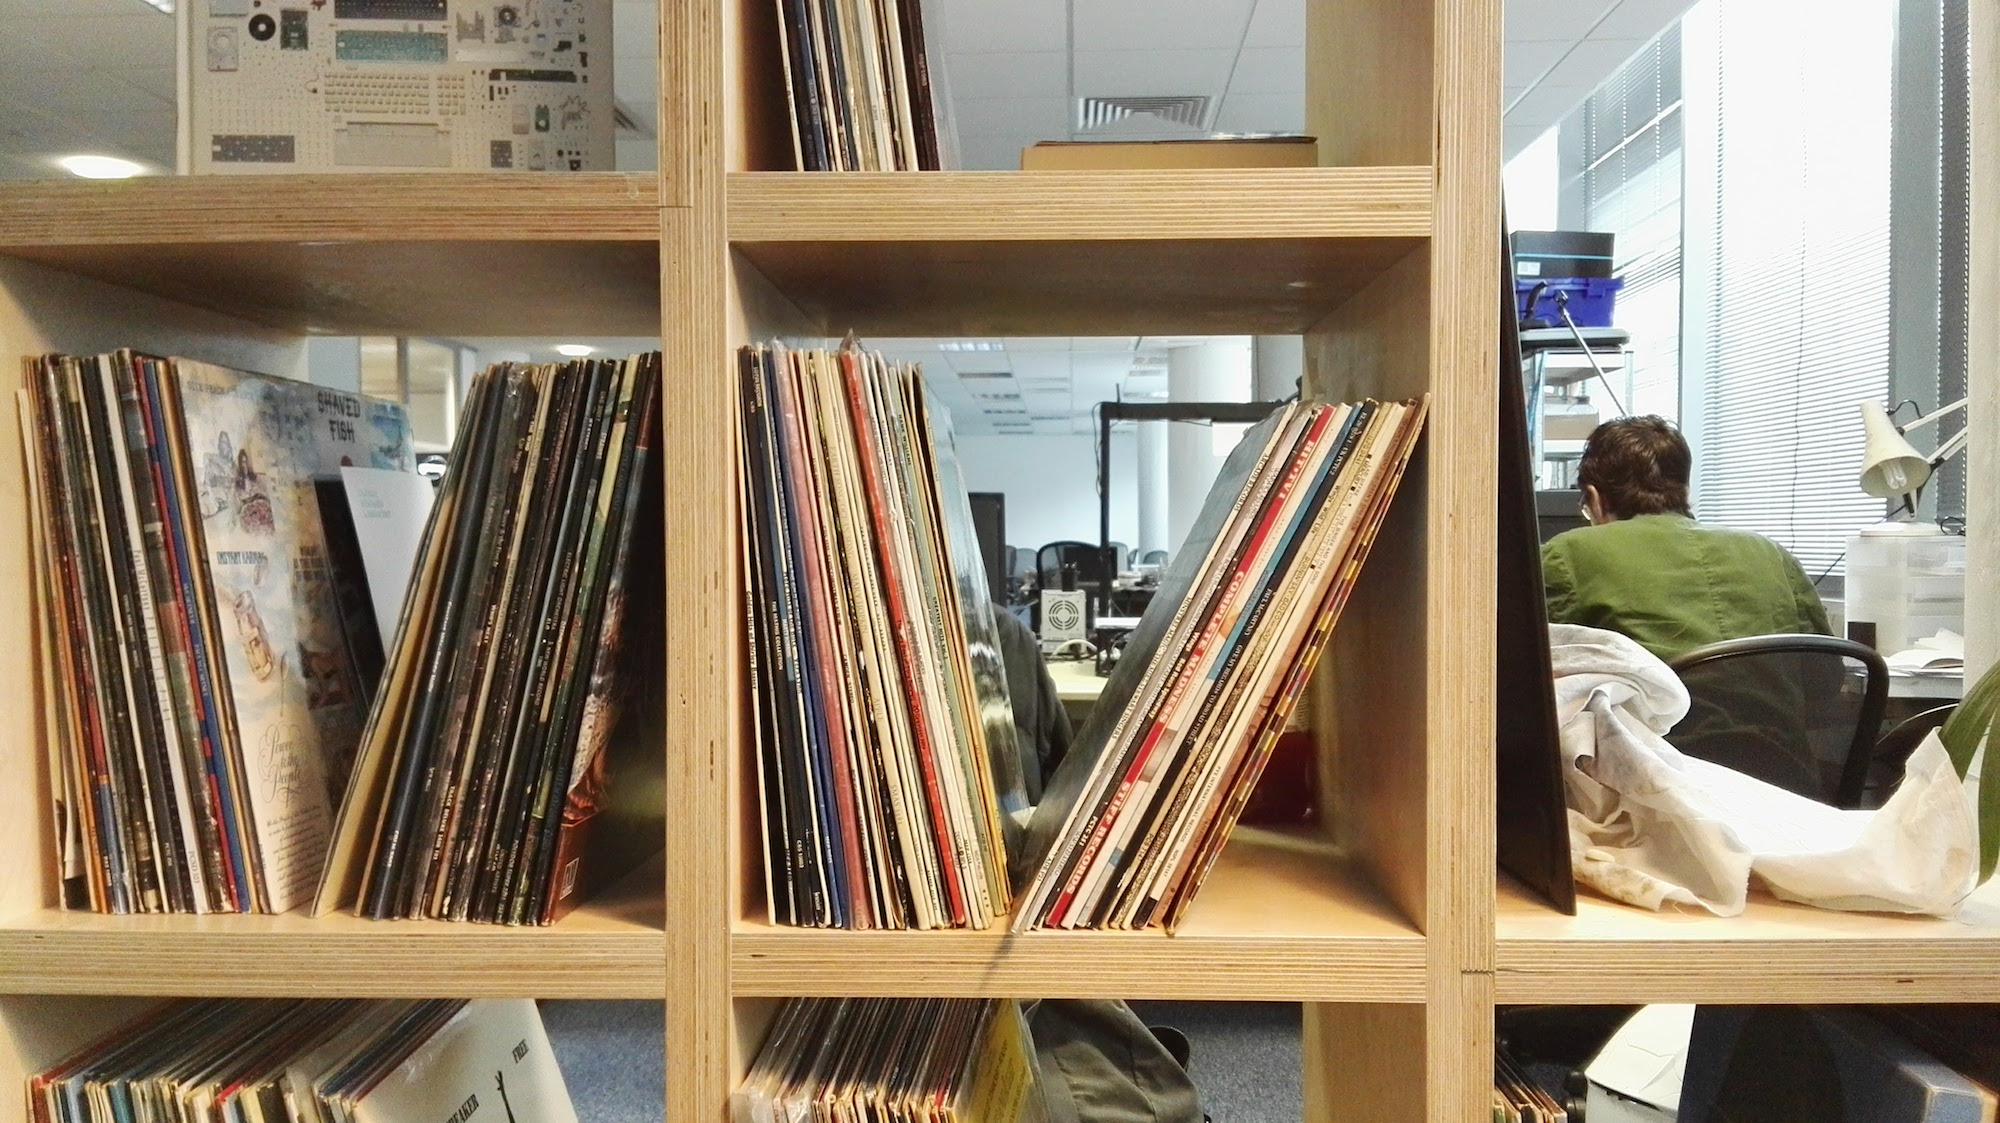 Vinyl collection inside the Central Research Laboratory